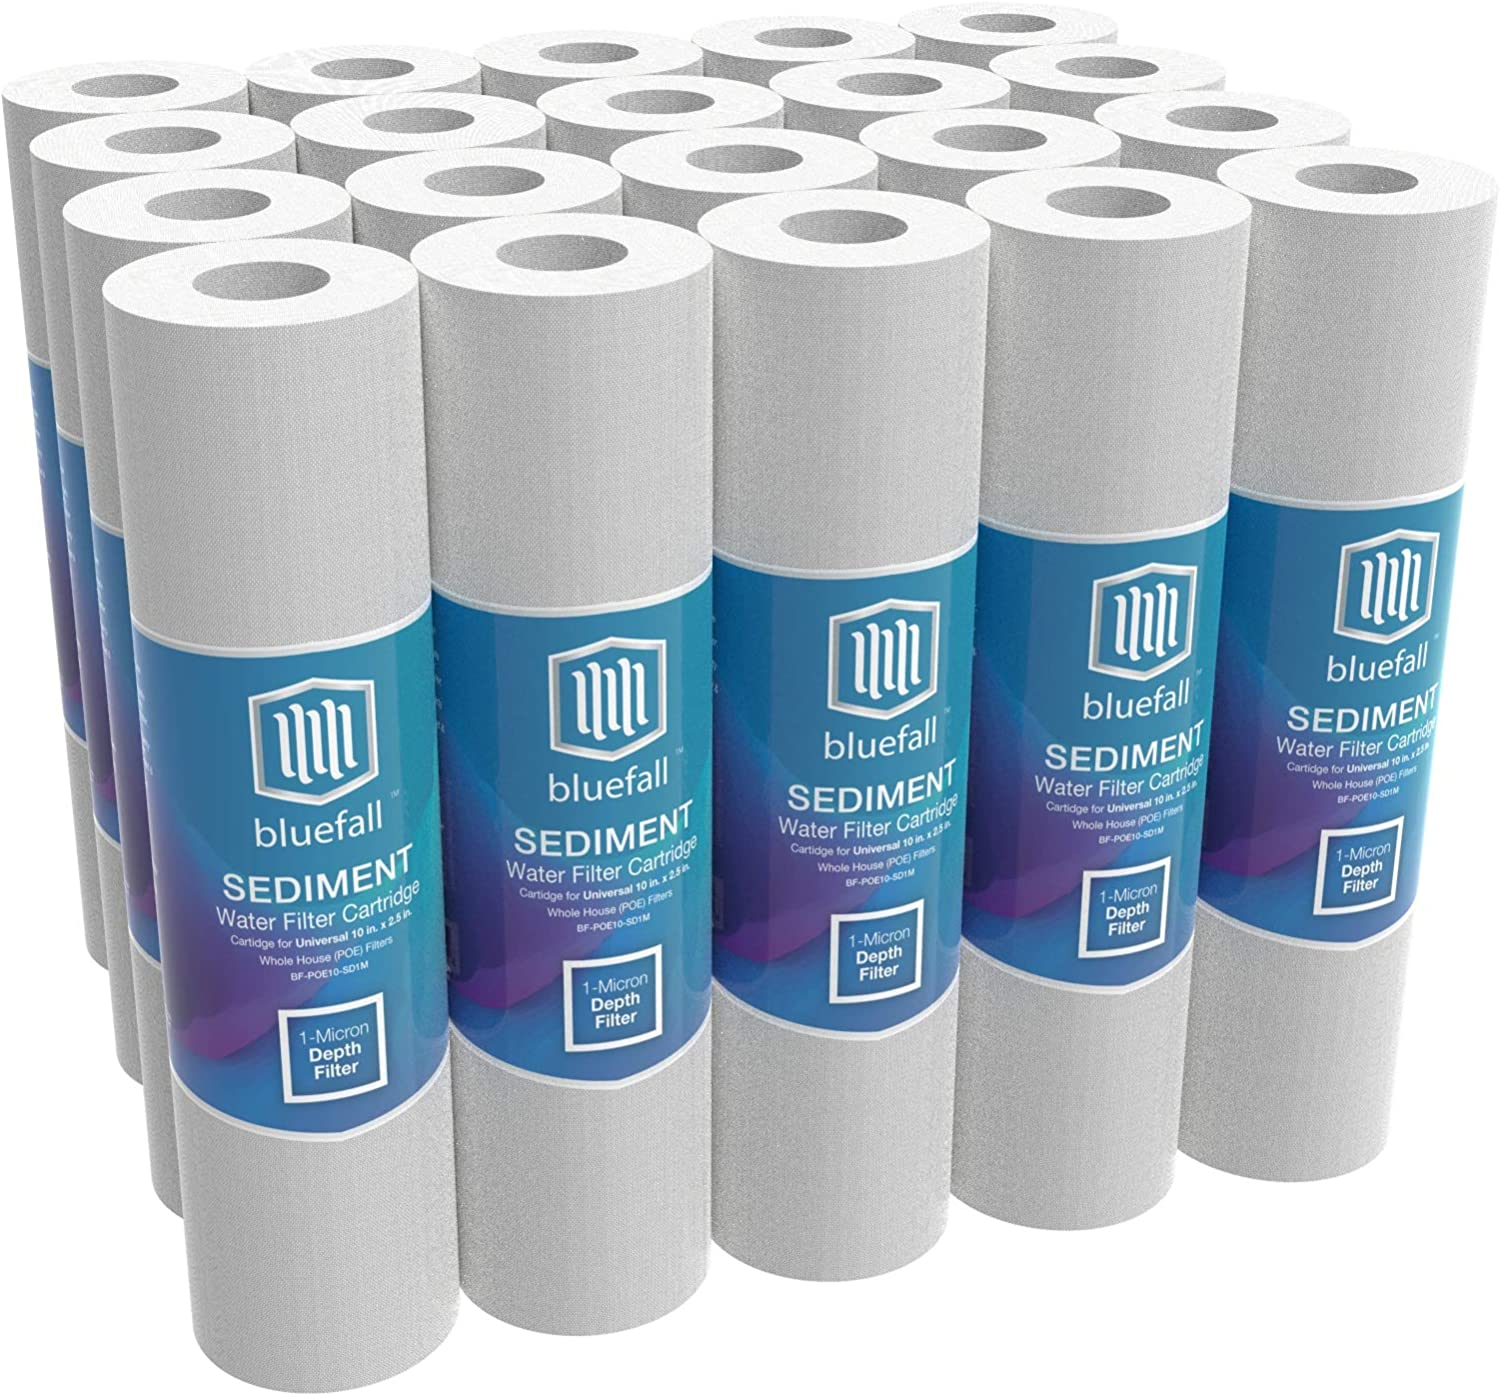 20 1 Micron Sediment Filter 10 x 2.5 Whole House Water Filter Sediment Water Filter Replacement Cartridge Compatible with Any 10 inch Reverse Osmosis Water Filtration System Value Pack